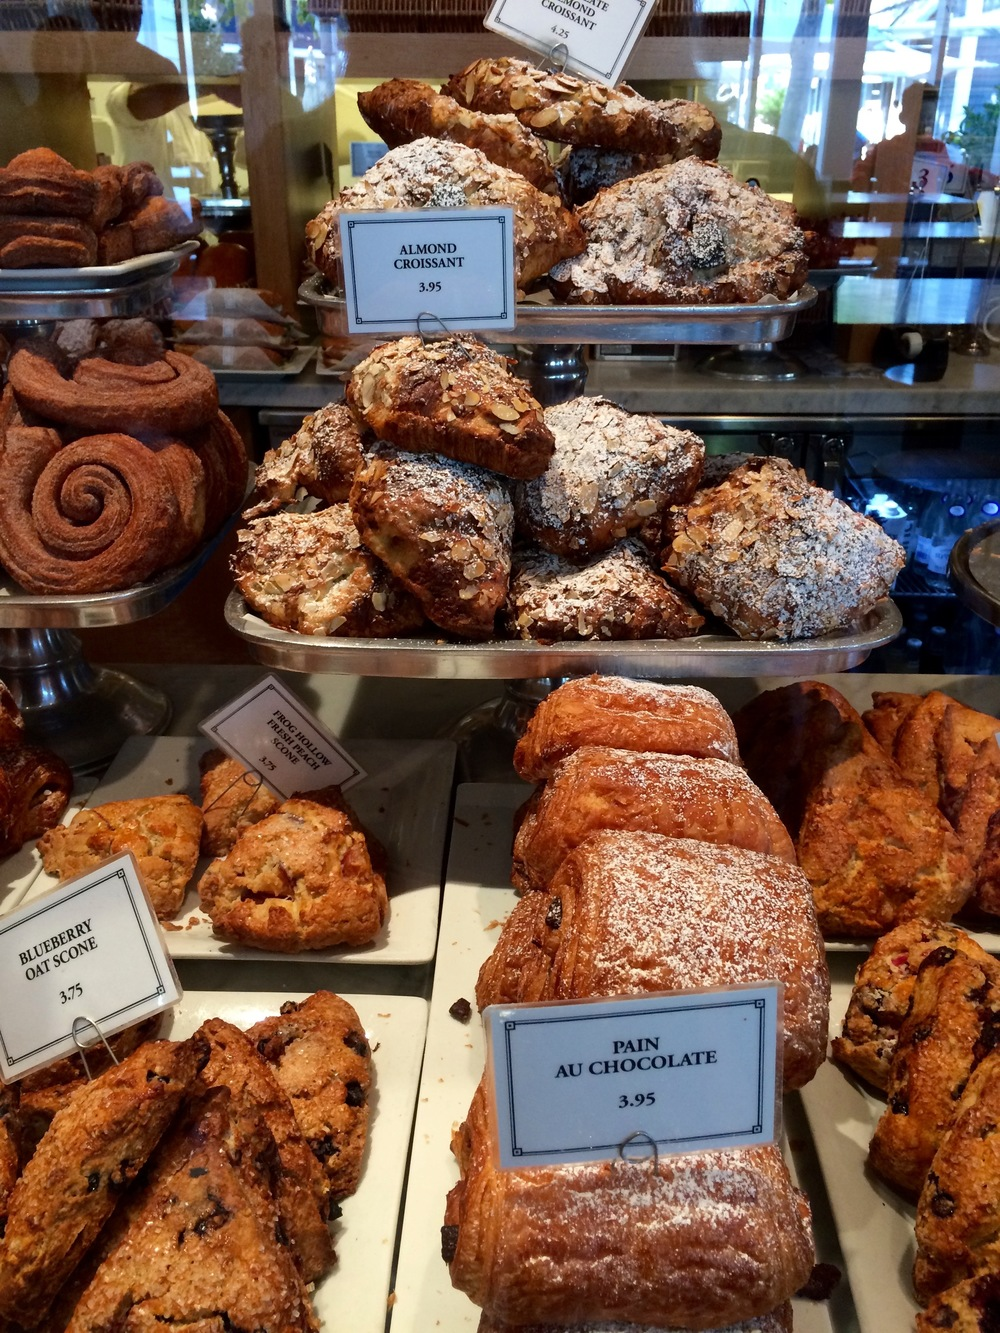 A bakery in Paris? No! Larkspur's Rustic Bakery & Cafe.